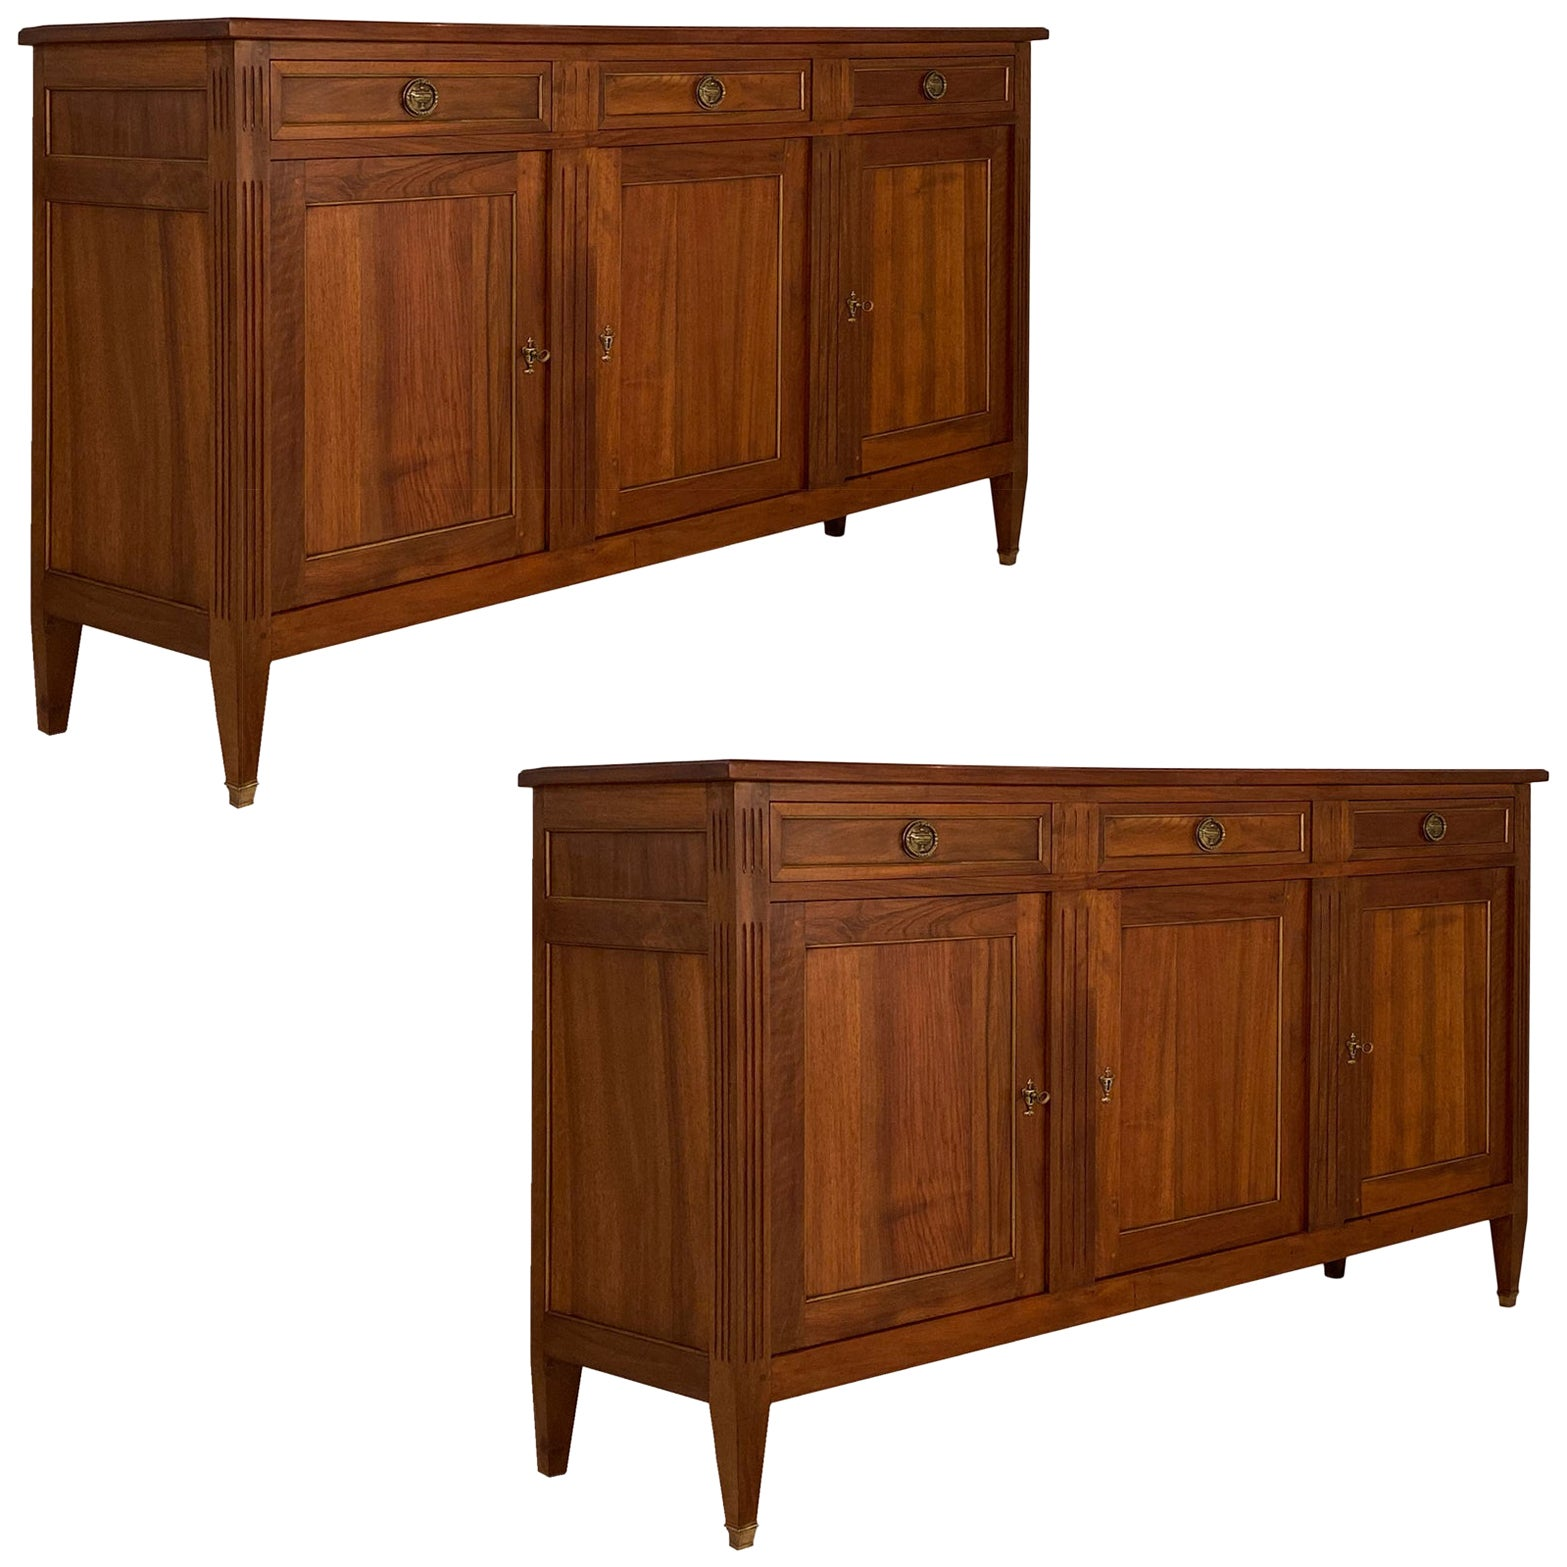 Pair of Antique French Directoire Buffets